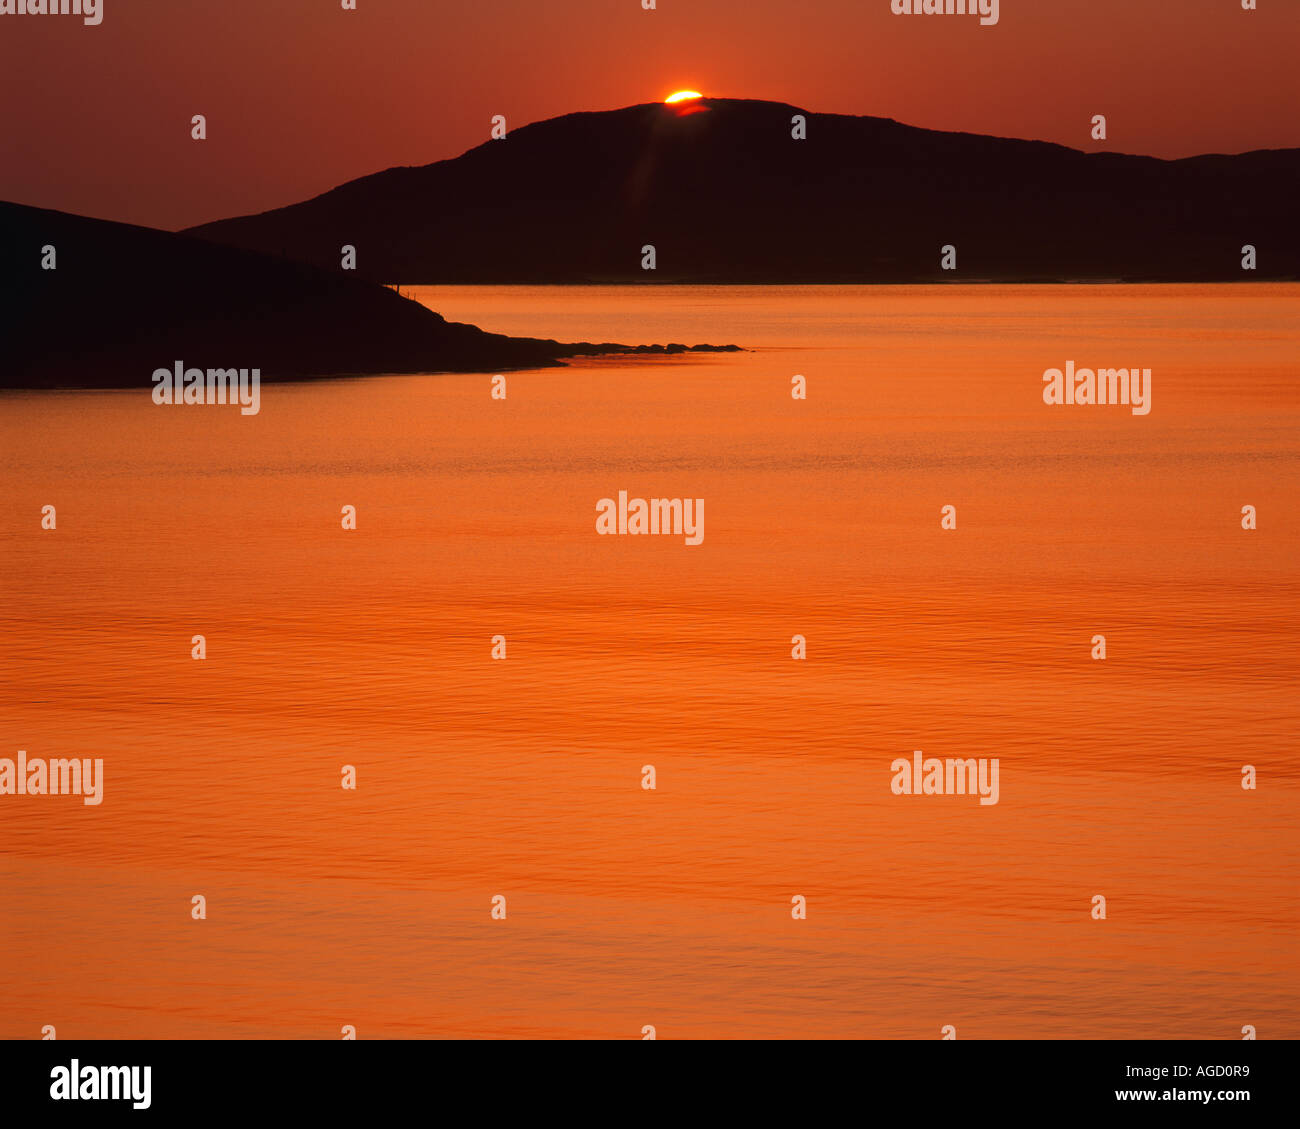 GB - SCOTLAND:  Sunset over Sound of Taransay in the Outer Hebrides - Stock Image